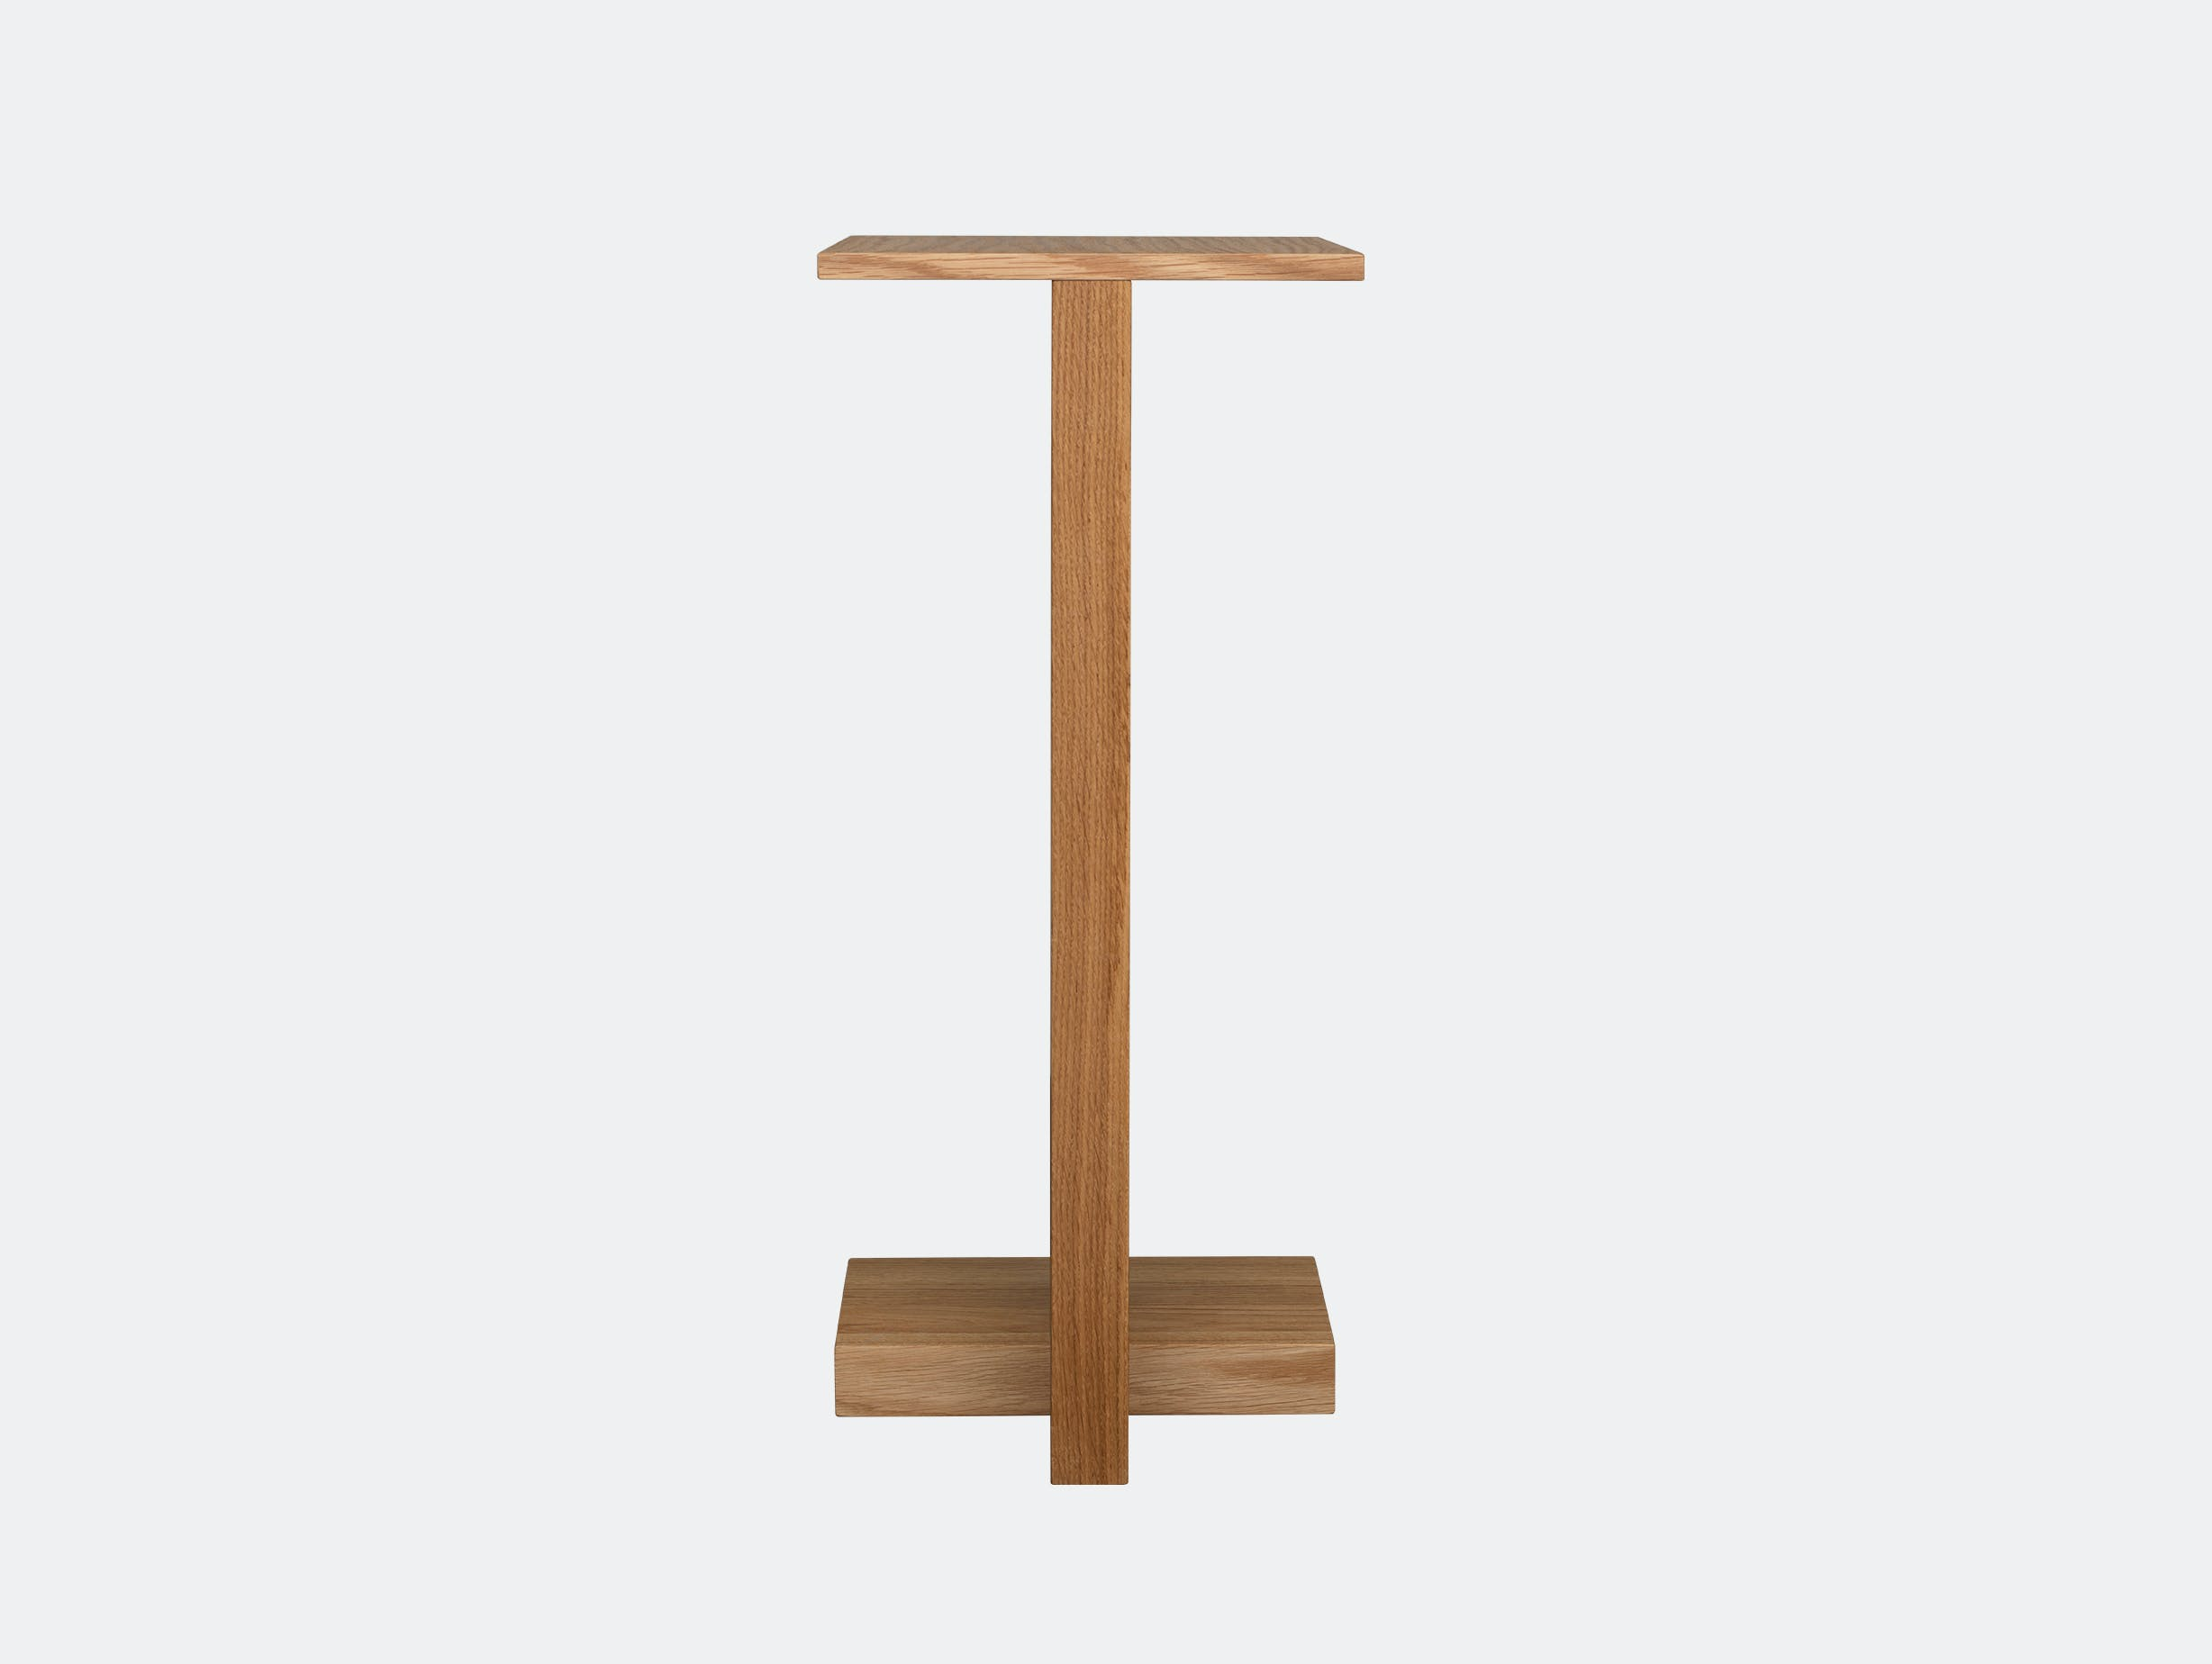 Fogia supersolid object 5 oak 3